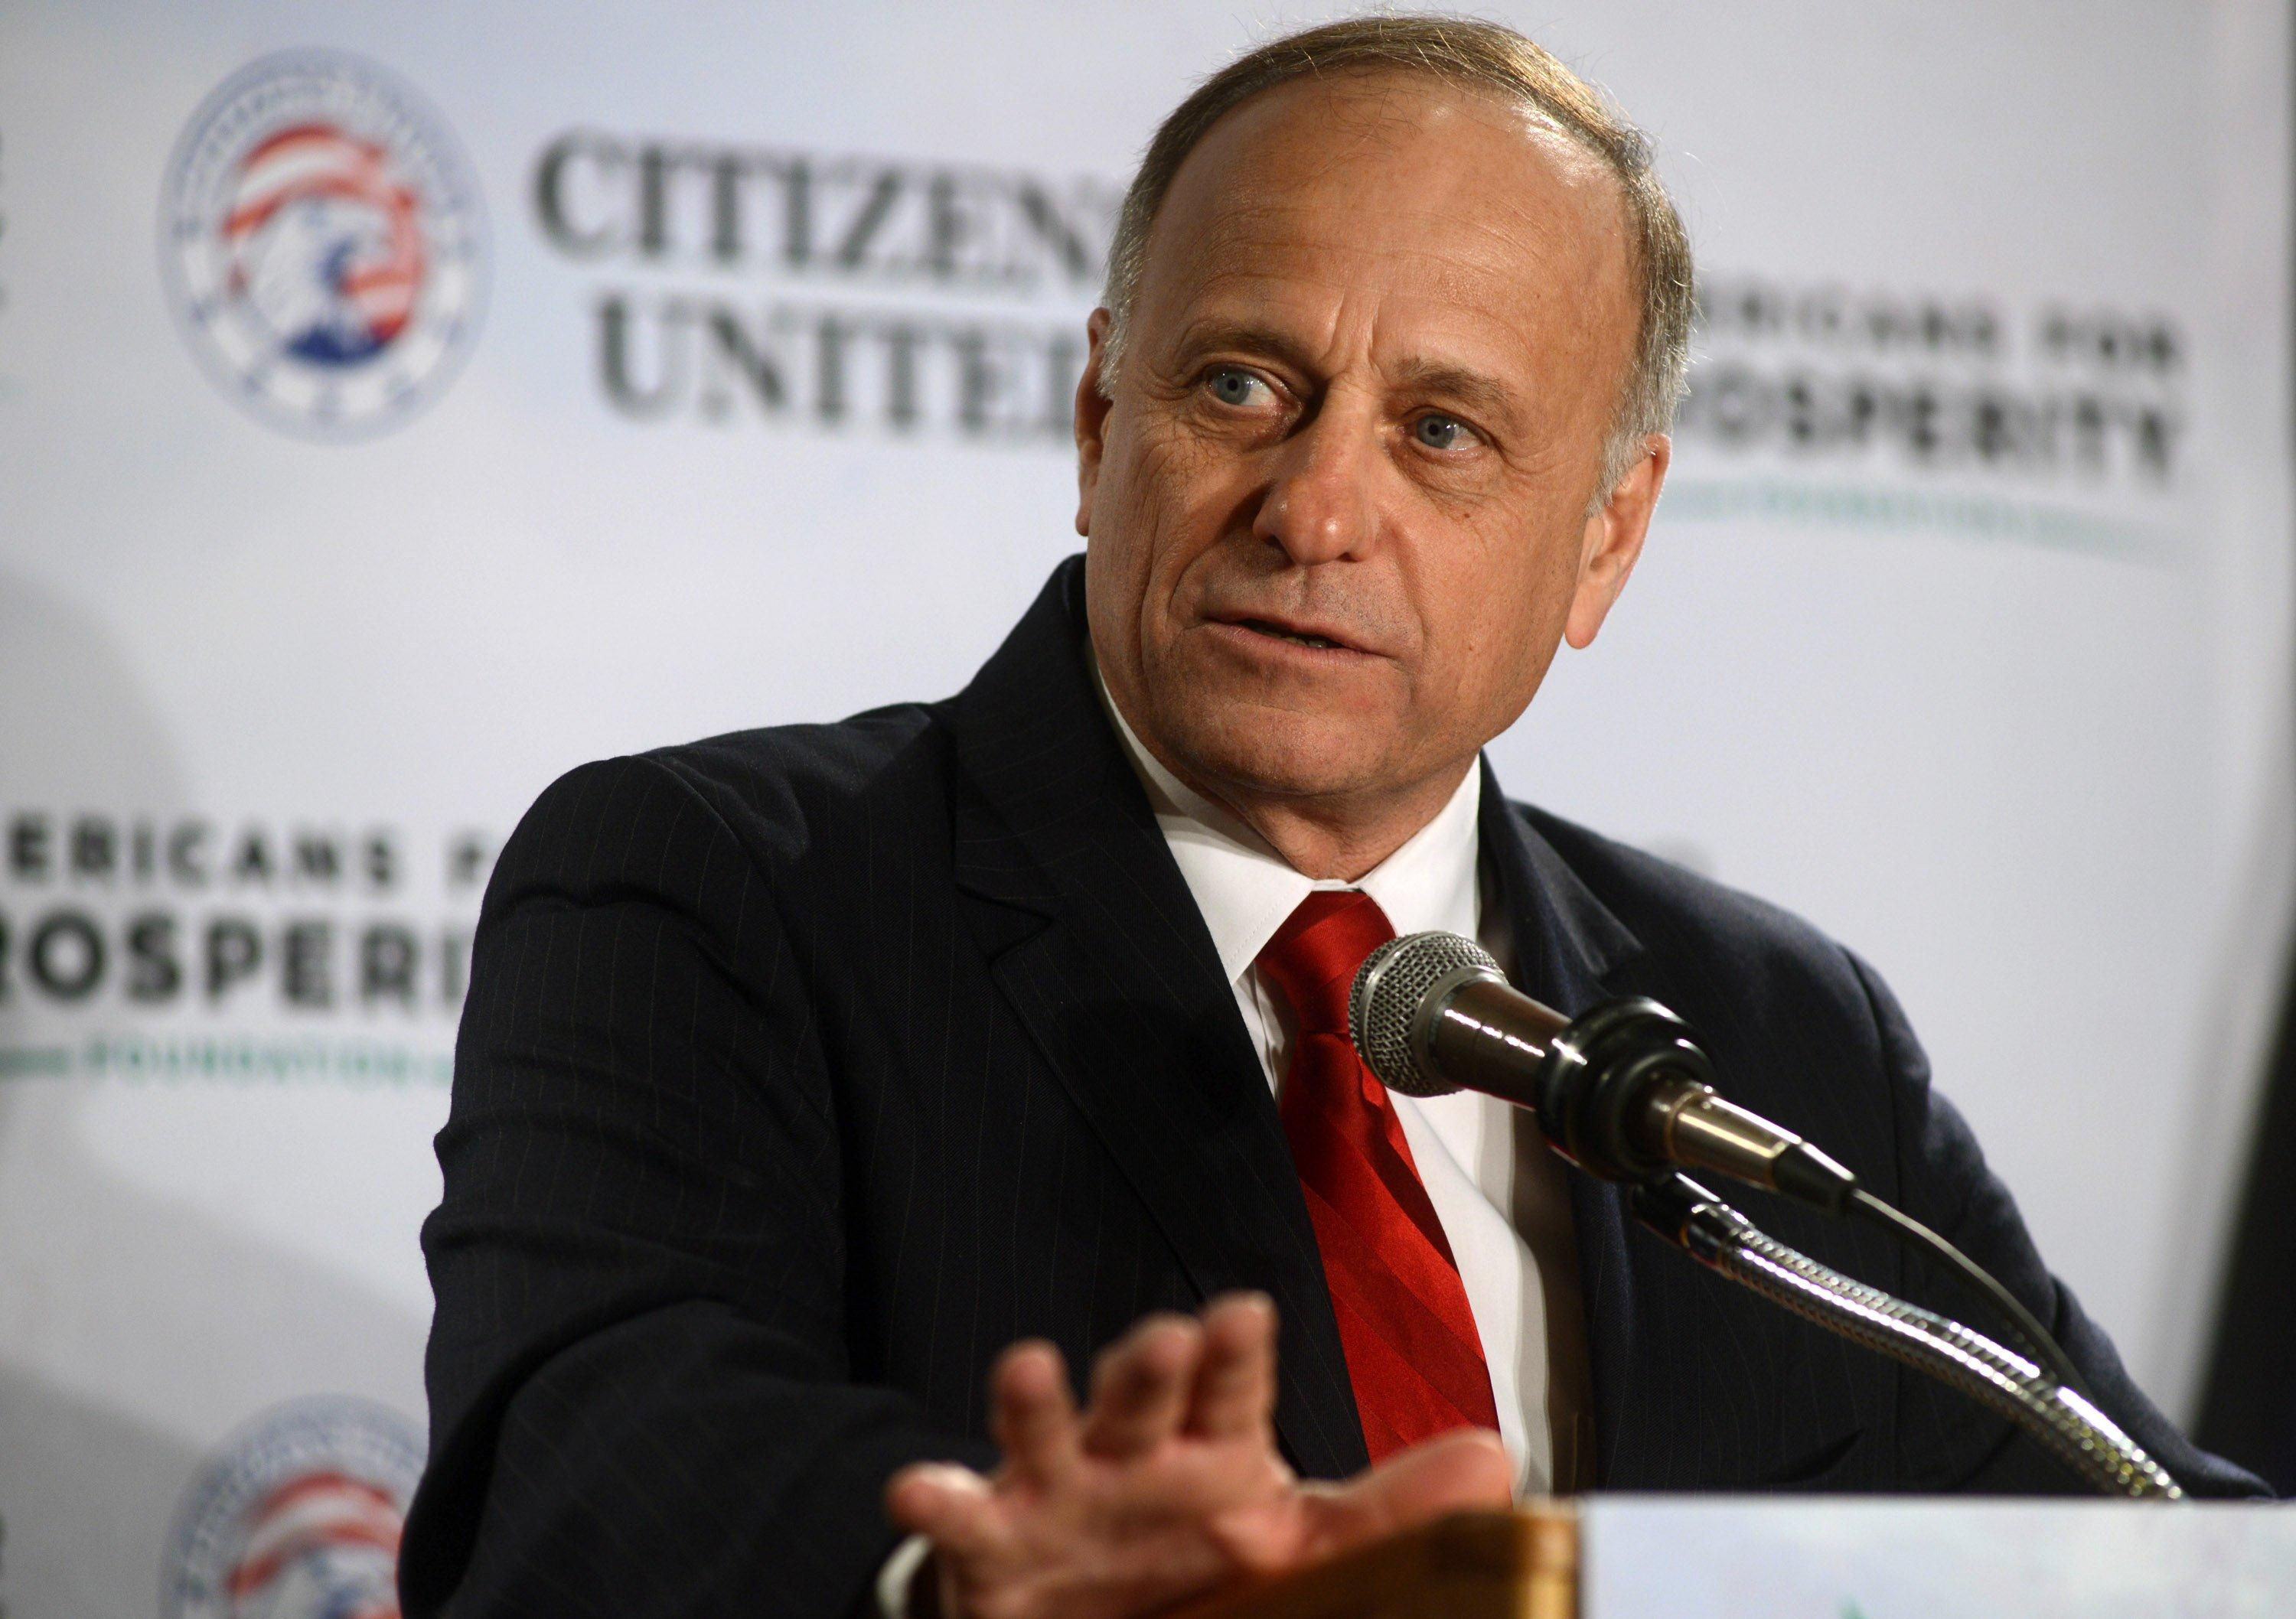 Image: Citizens United And Americans For Prosperity Foundation Host Leading Conservatives For Freedom Summit